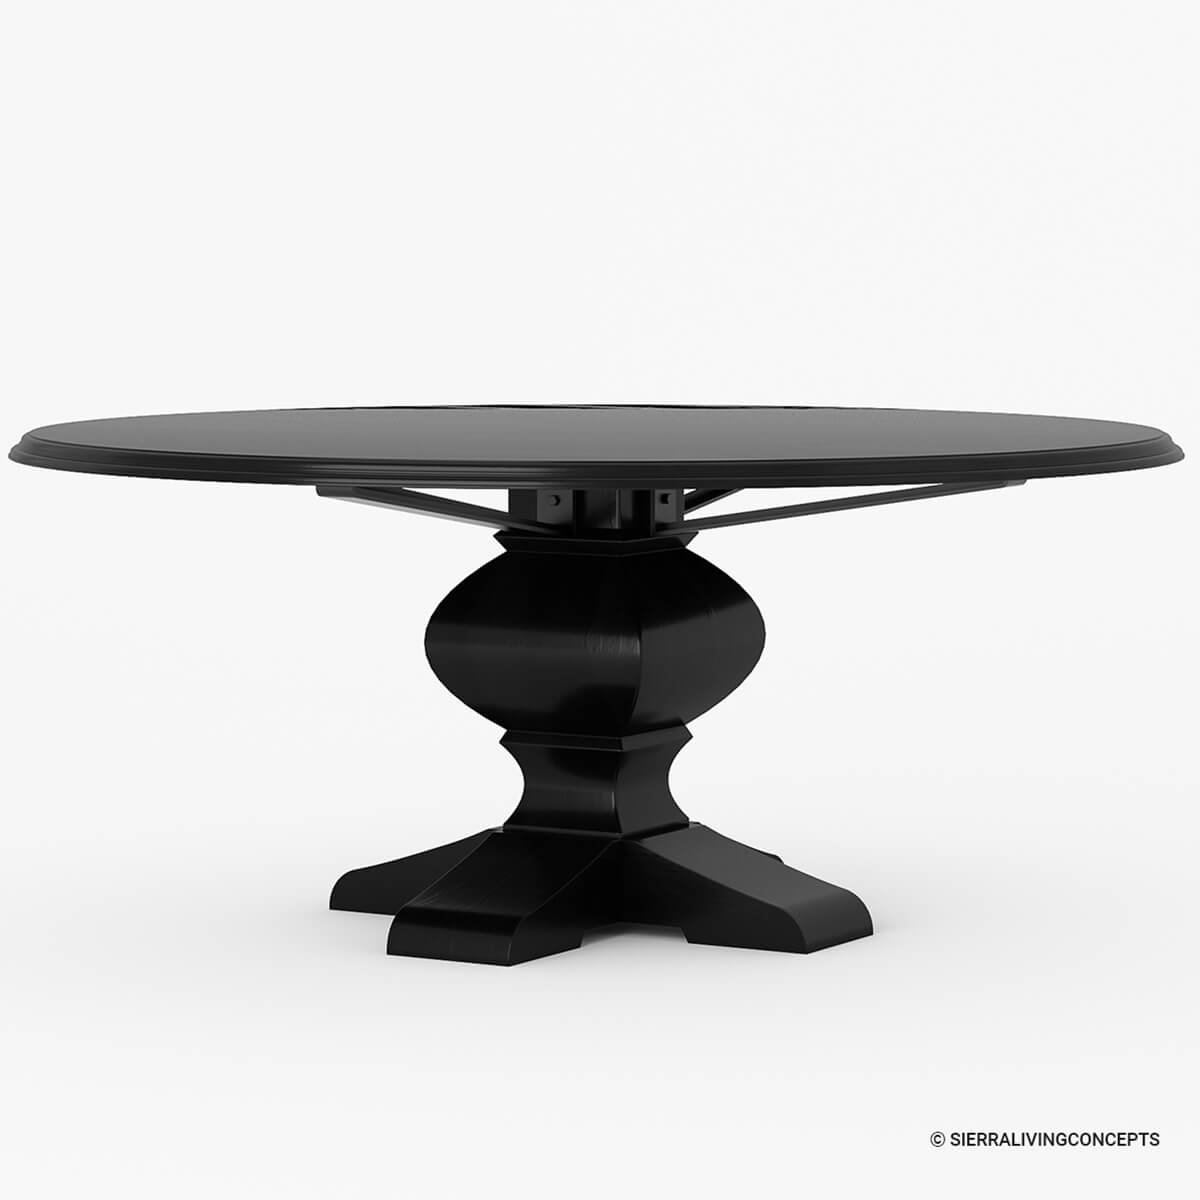 Sierra nevada rustic solid wood large round dining table for Large round dining table